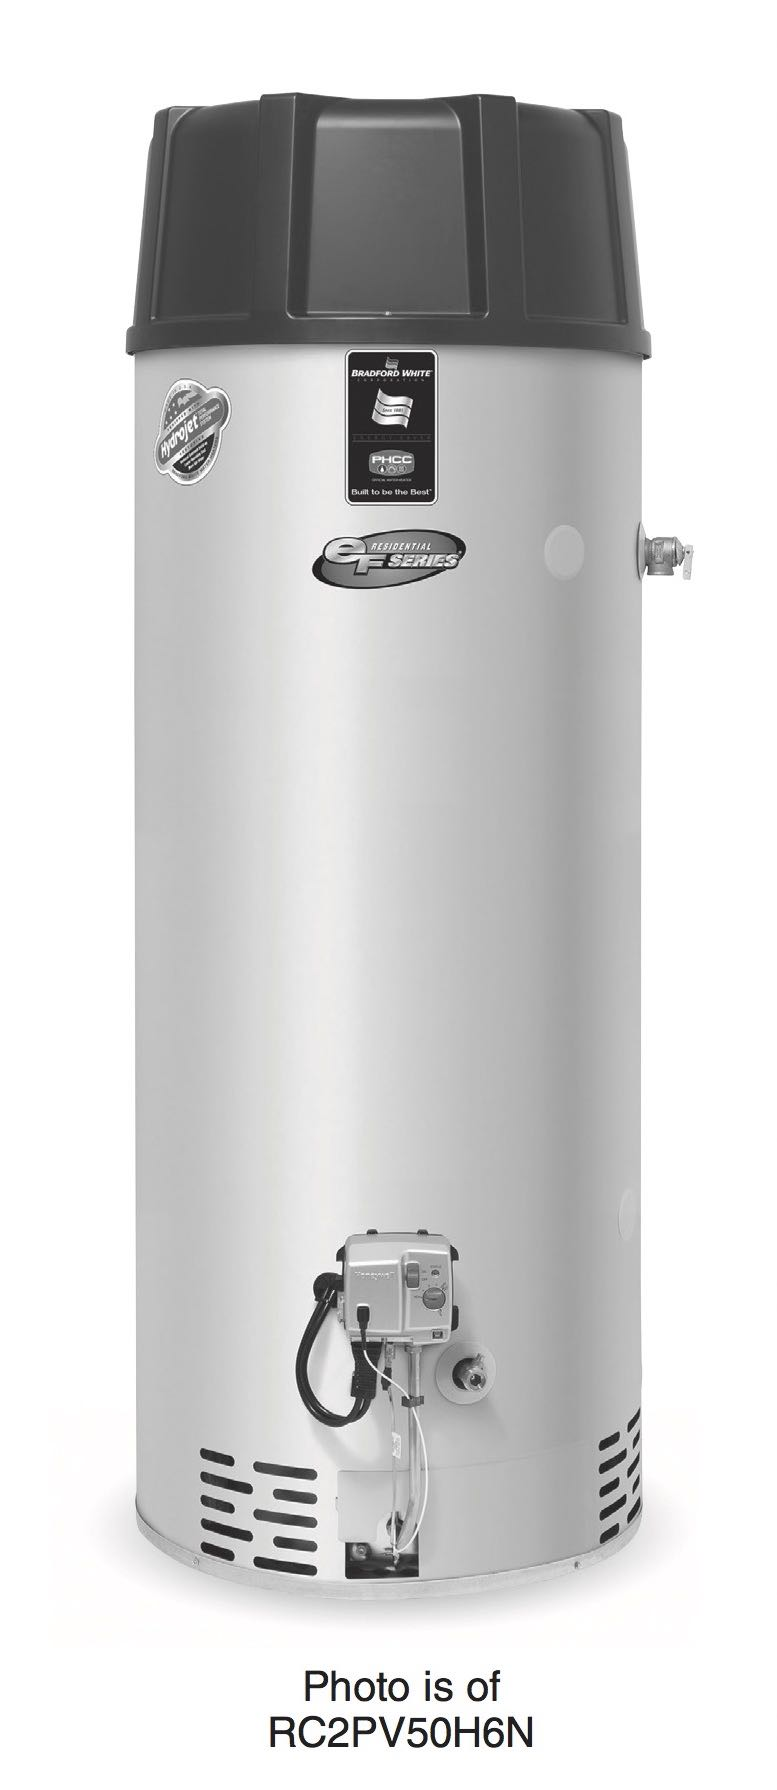 177 water heaters 101 getting yourself in hot water for Hot water heater 101